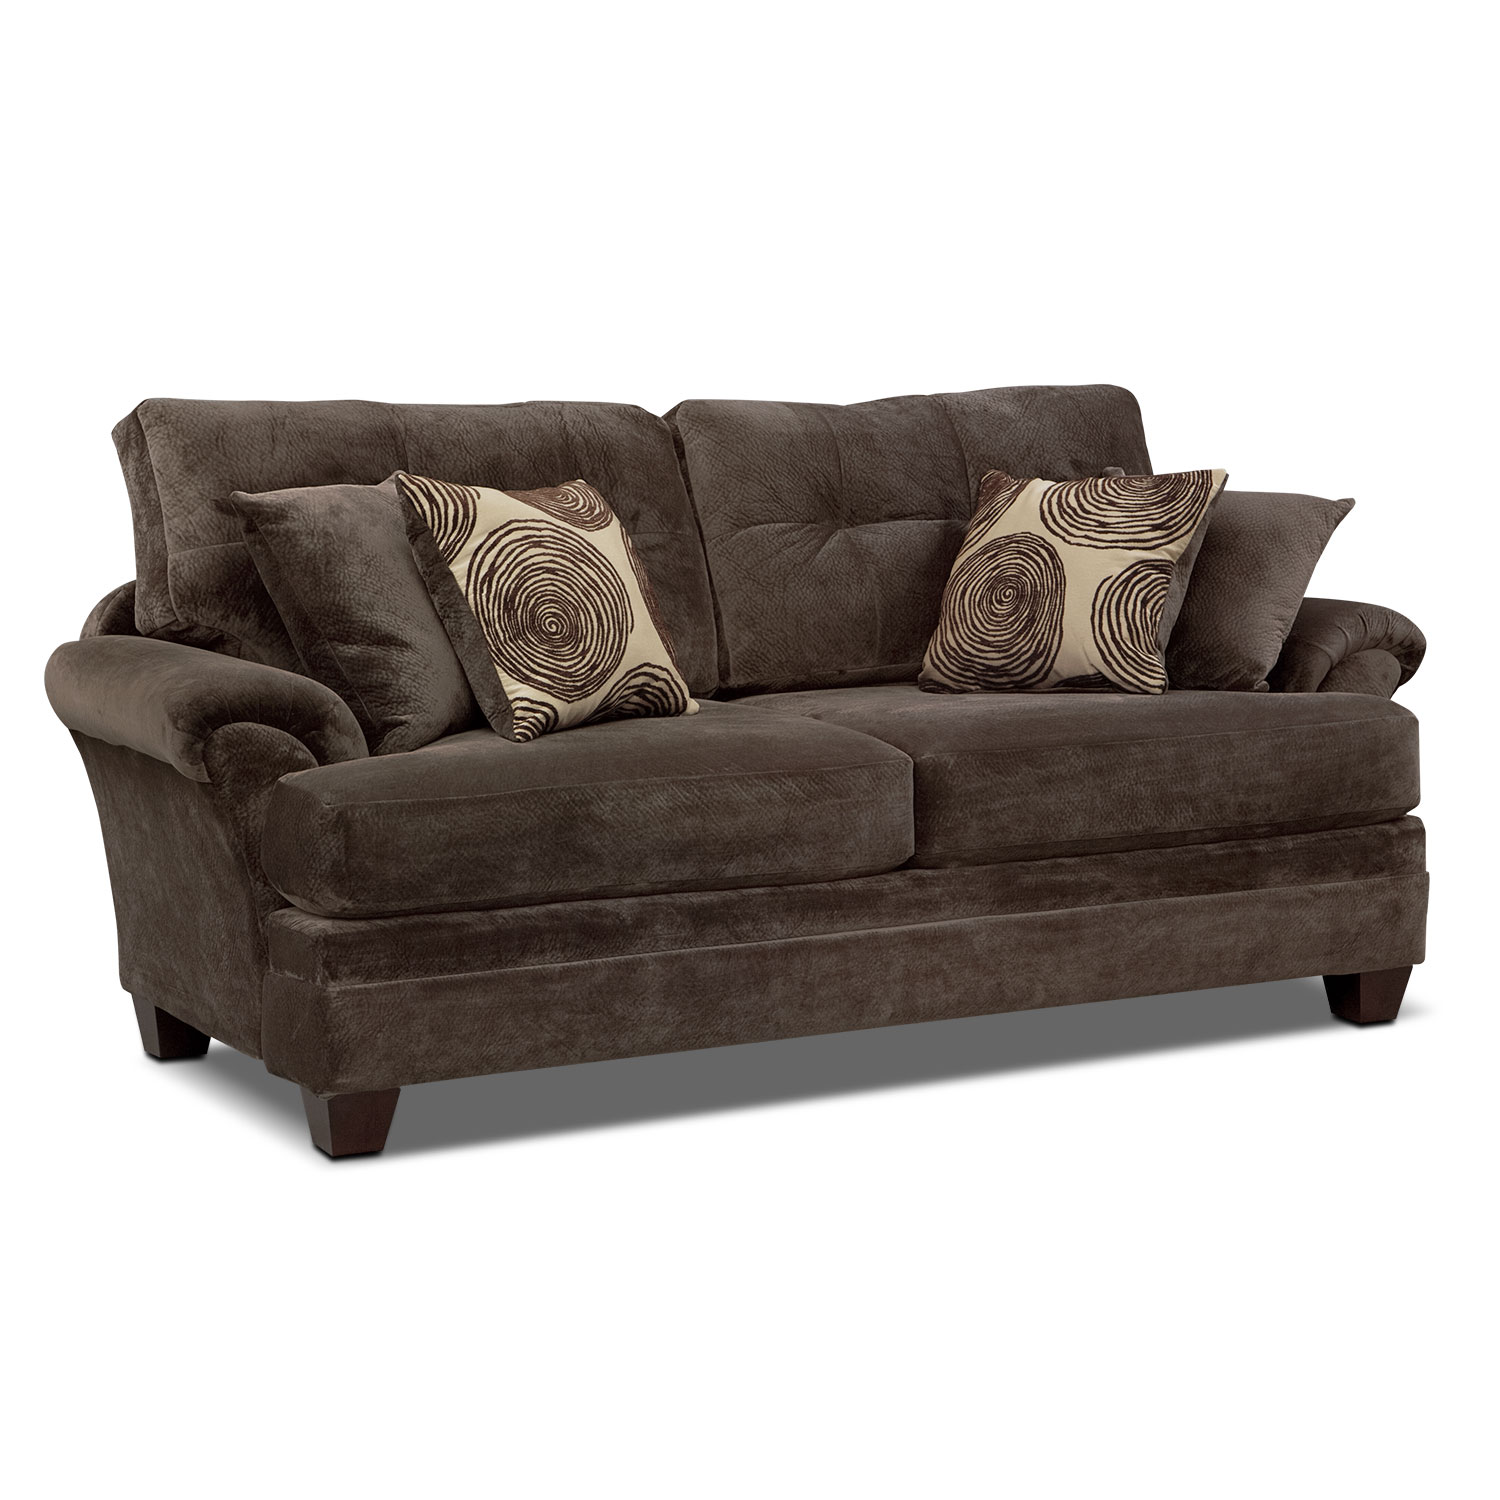 cordelle sofa chocolate value city furniture. Black Bedroom Furniture Sets. Home Design Ideas